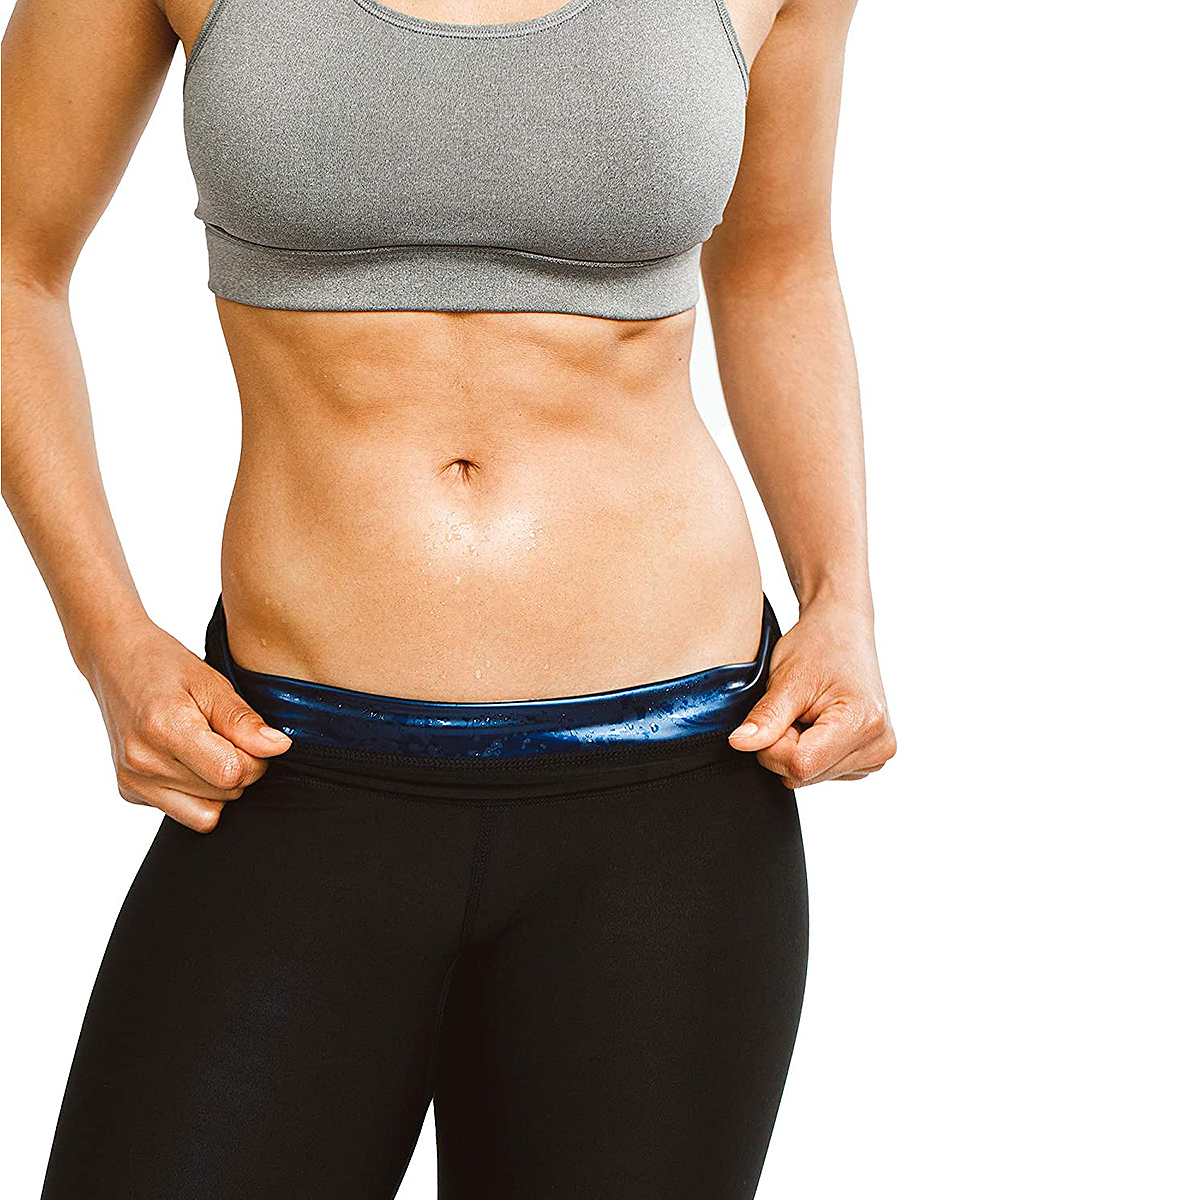 Weight loss The Heat Is On: These Sauna Leggings May Maximize Your Weight Loss Results thumbnail